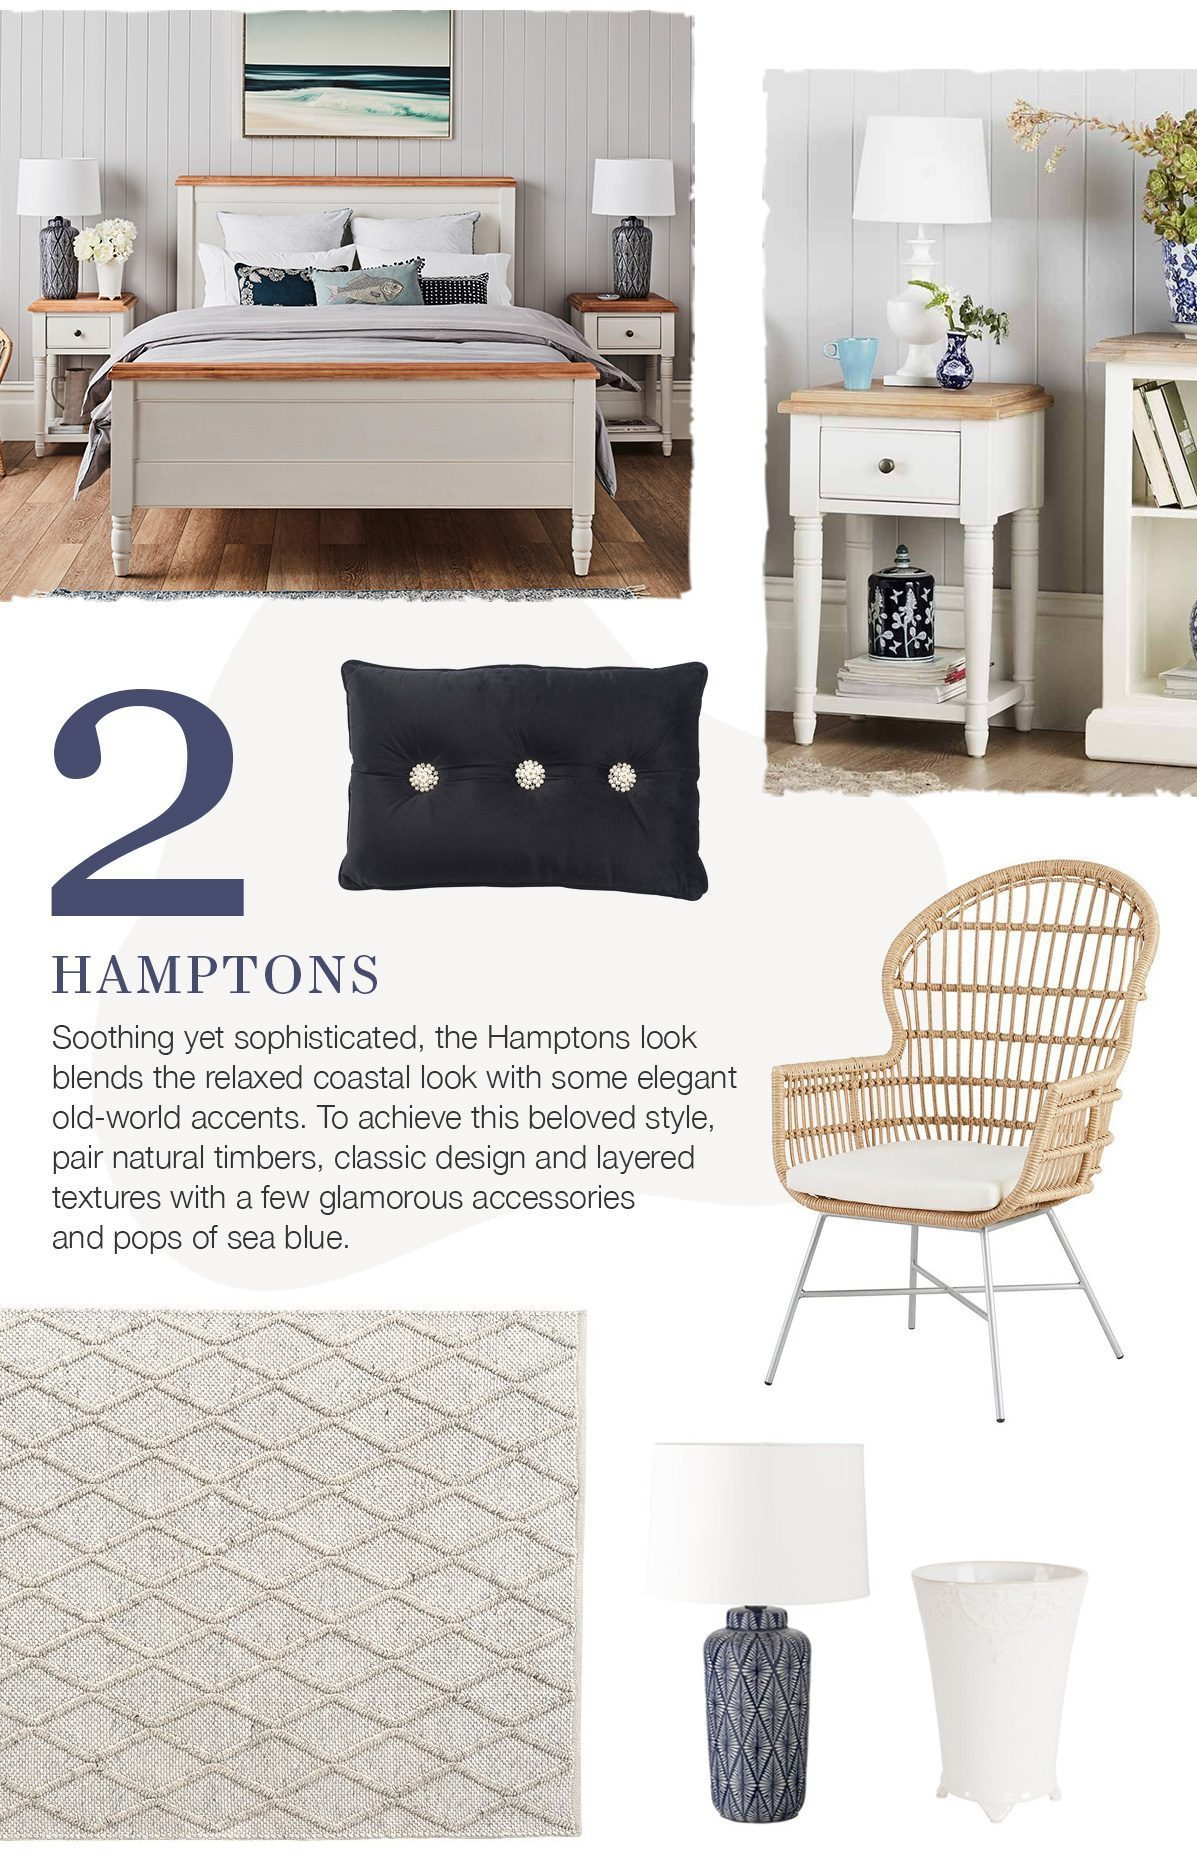 3 Dreamy Decorating Ideas for Your Bedroom - hamptons